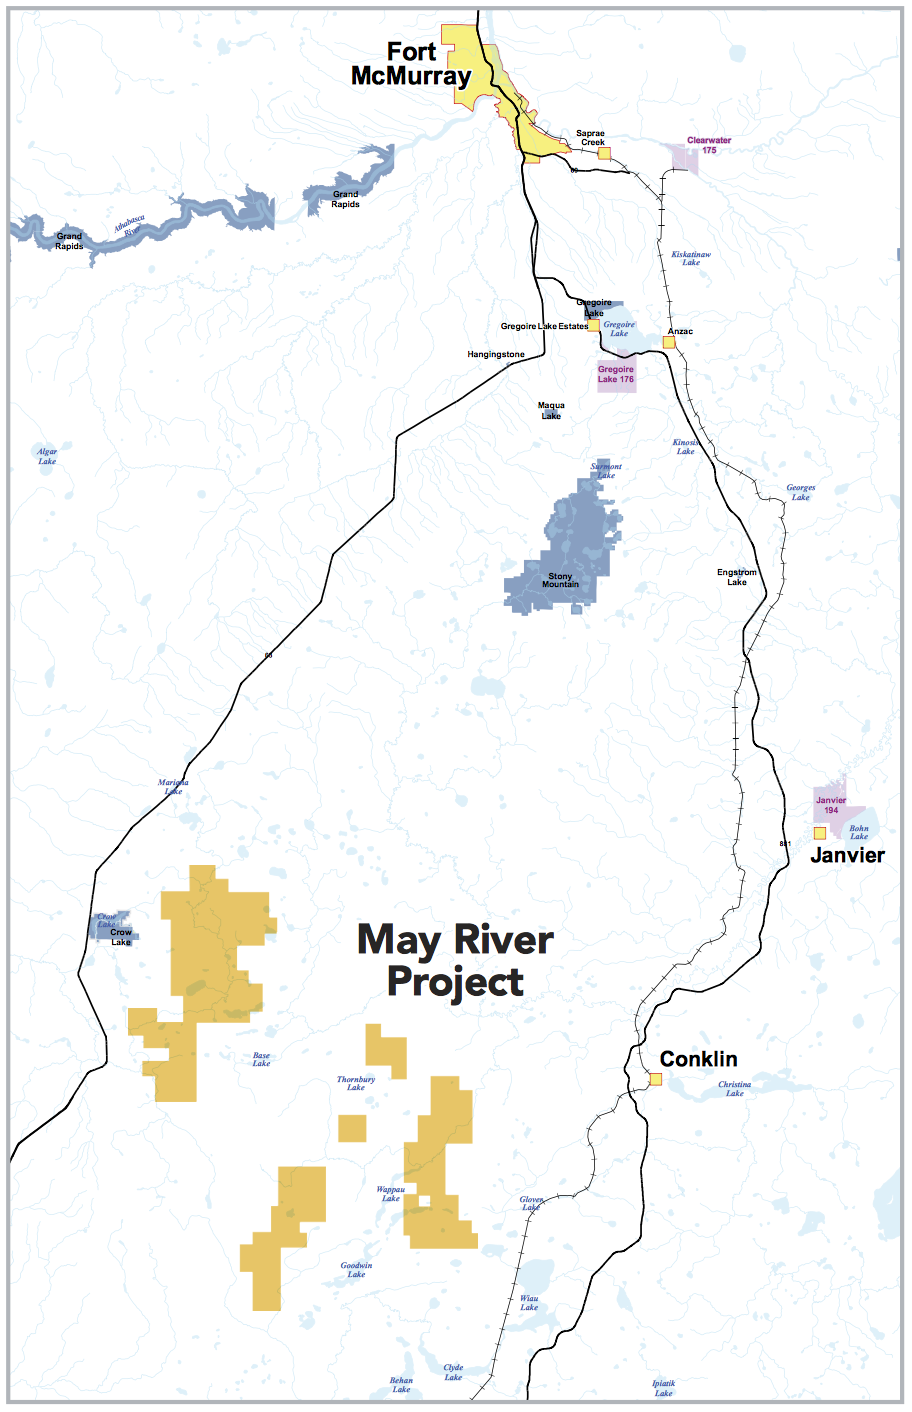 MAY RIVER LOCATION MAP (COURTESY MEG ENERGY)